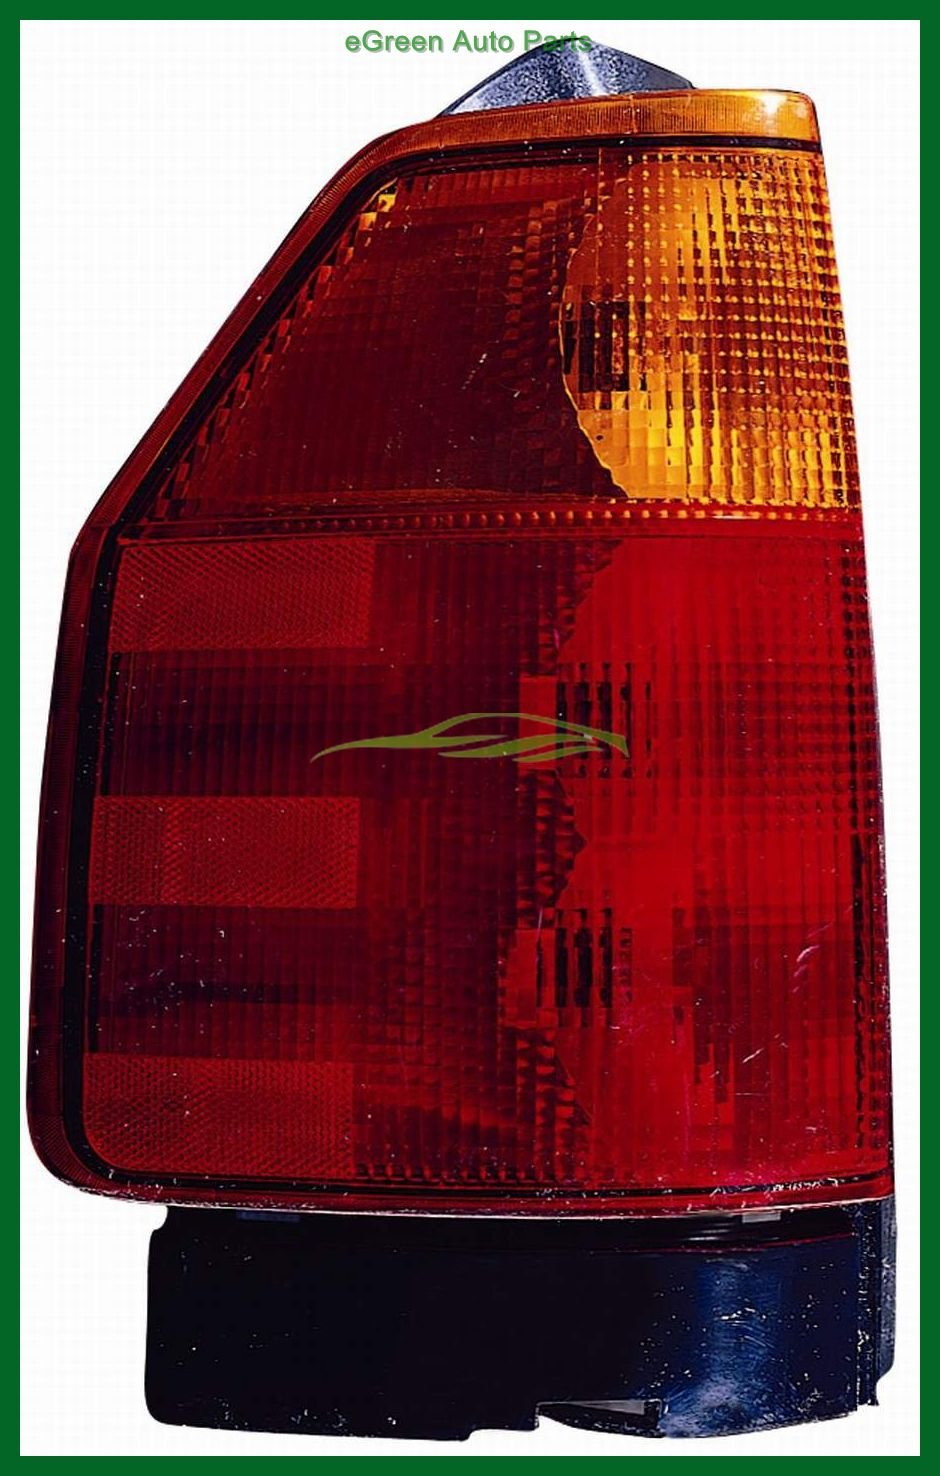 Gmc Envoy 02-09 Left Driver Side Rear Brake Taillight Taillamp New Lens&Housing aftermarket tool 241008 or 241 008